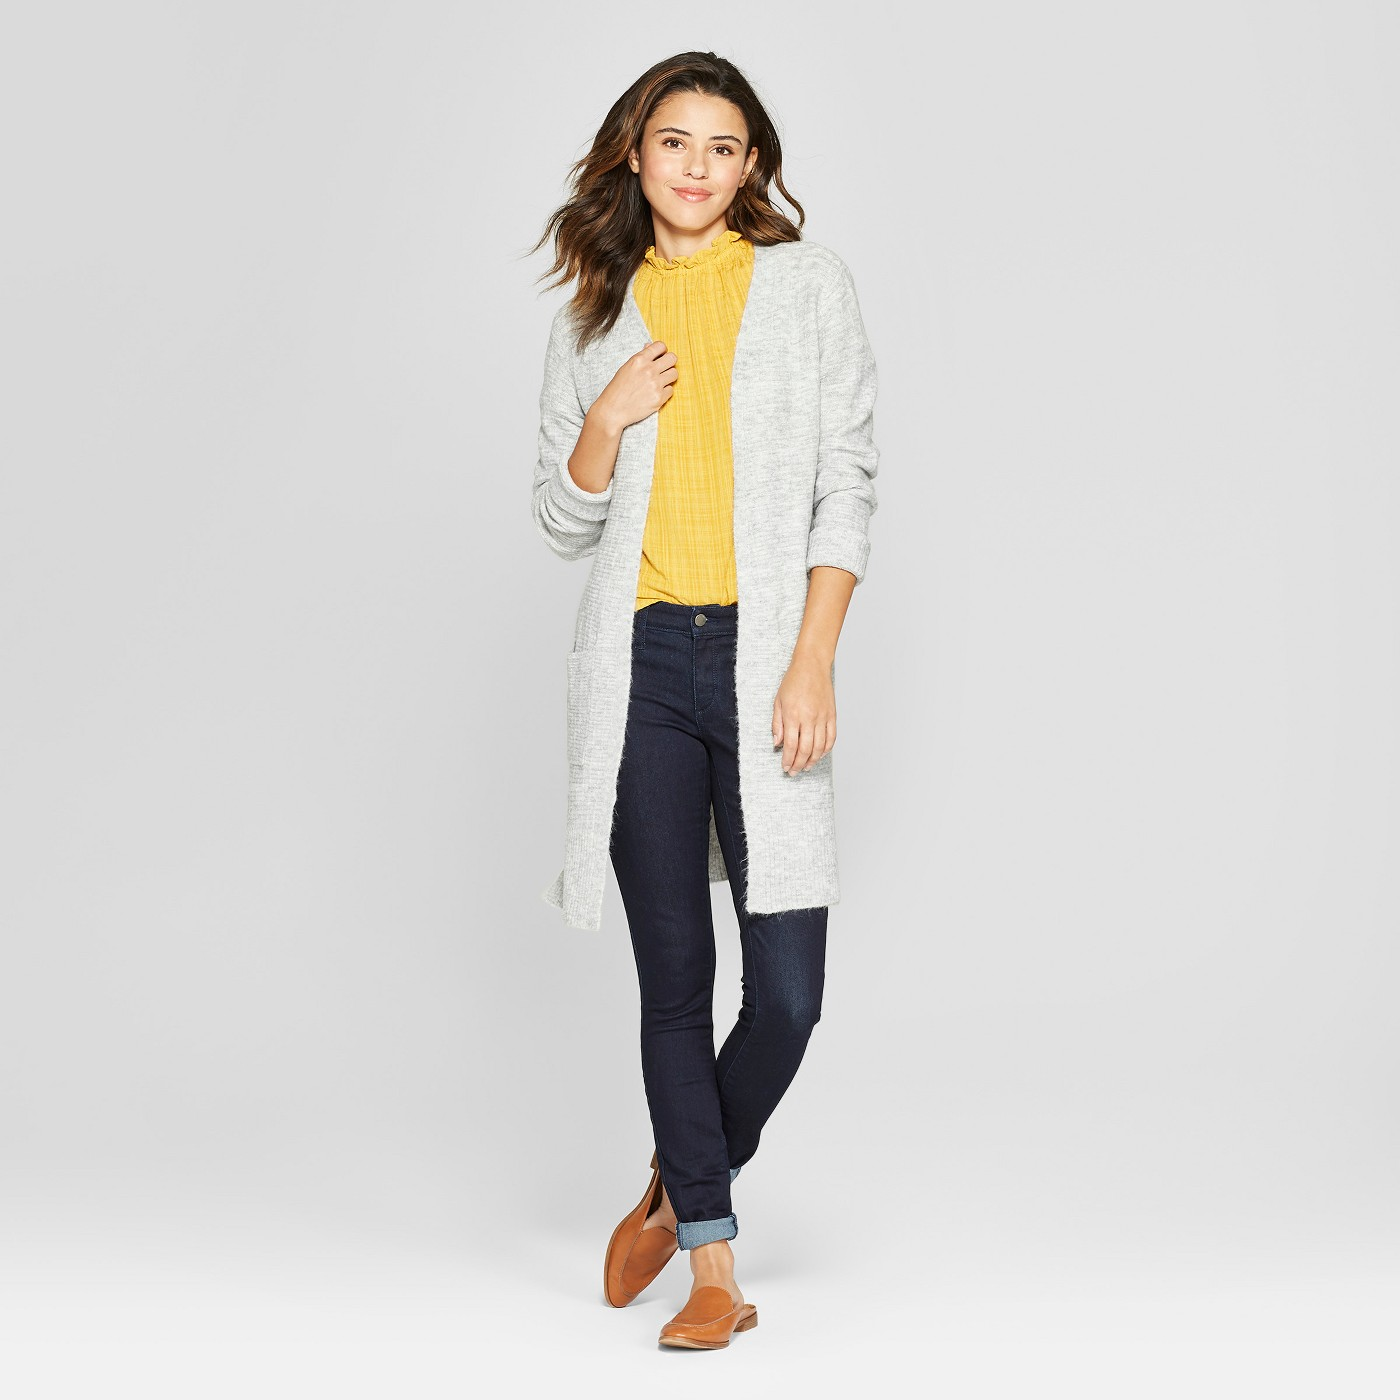 "Women's Duster Open Cardigan - Universal Threadâ""¢ - image 3 of 3"